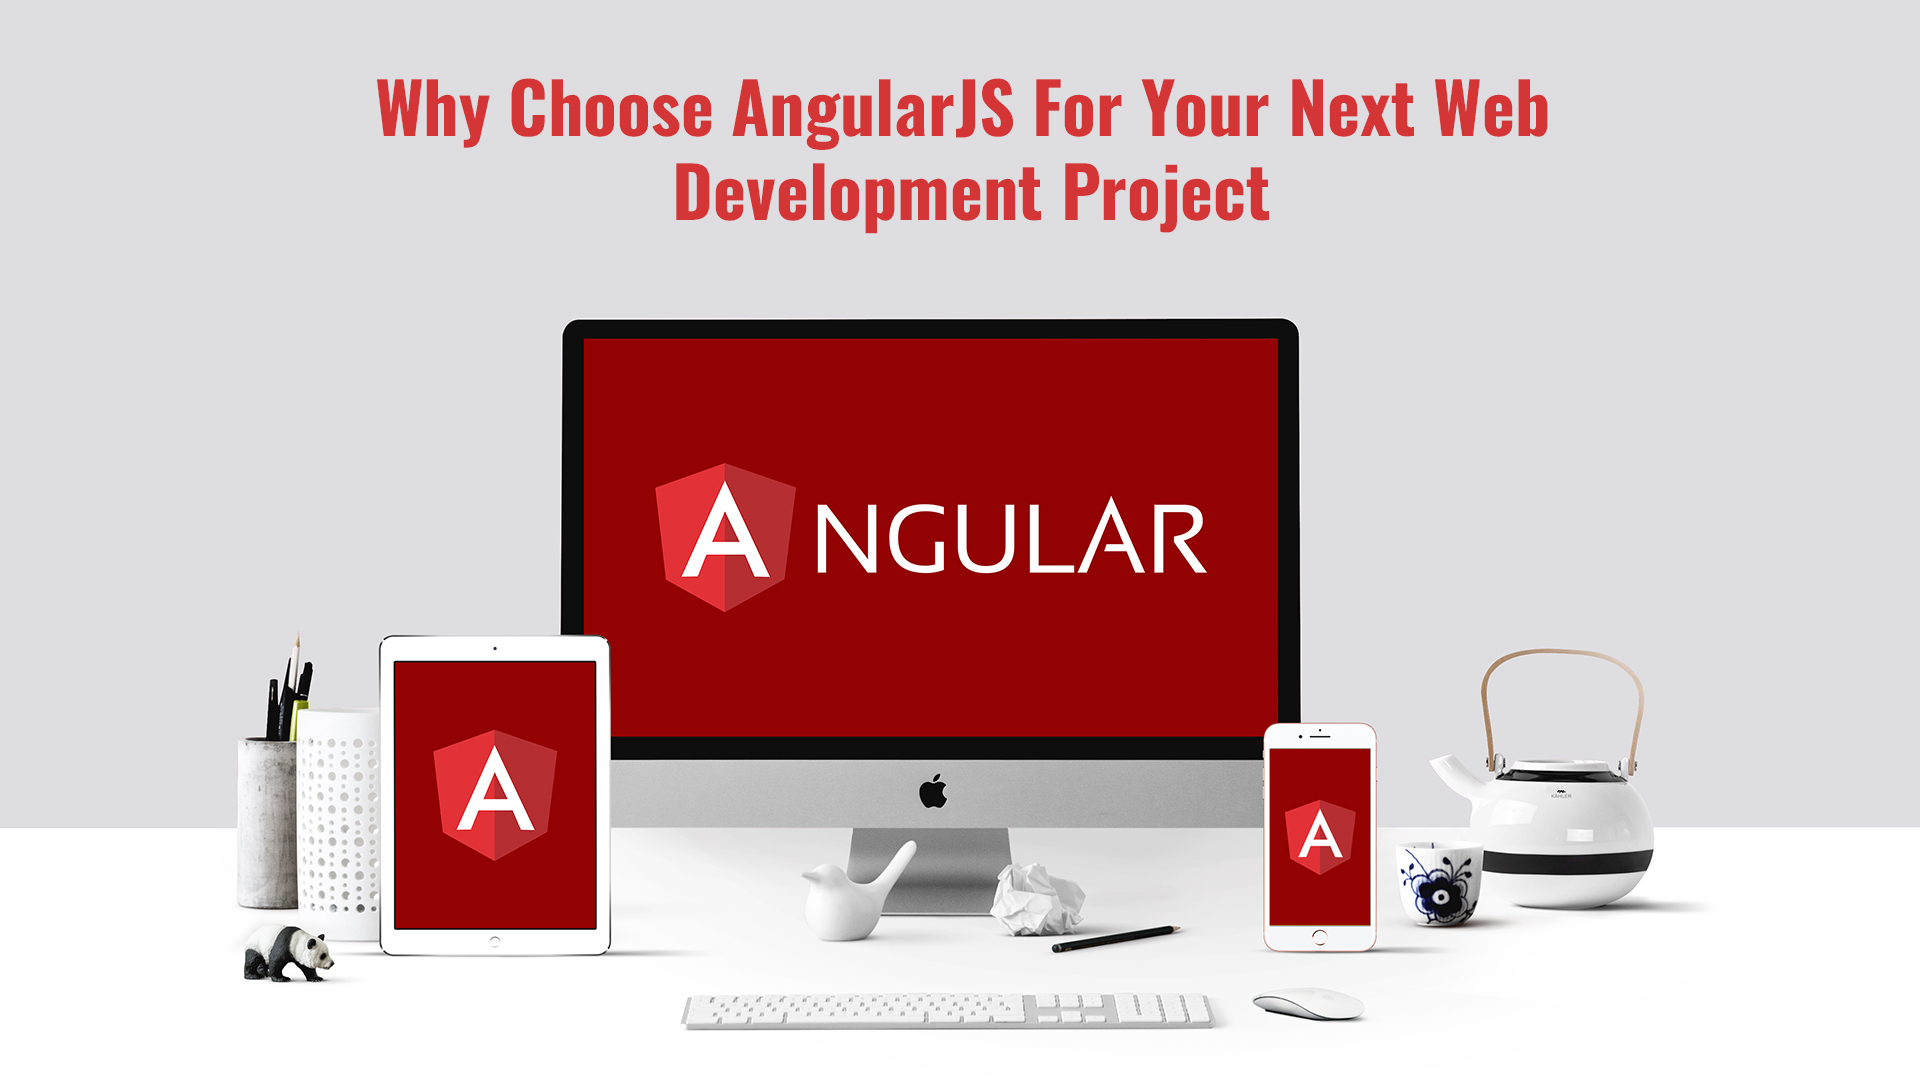 Why Choose AngularJS For Your Next Web Development Project